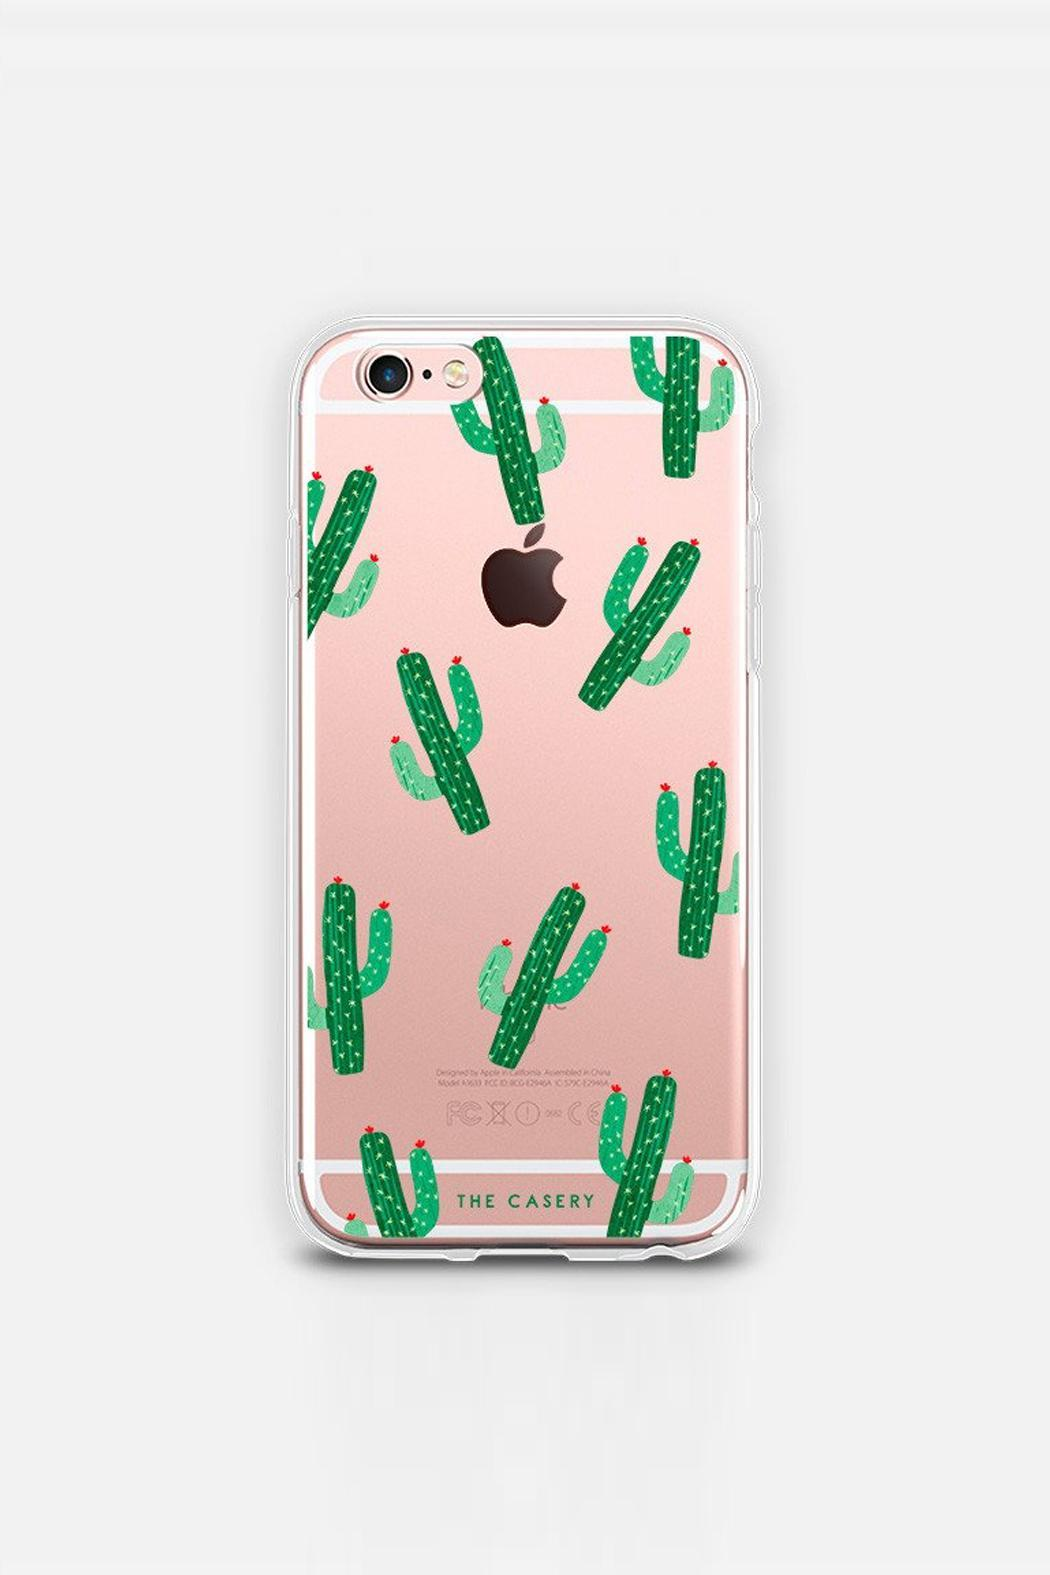 THE CASERY Iphone 6/6s Case - Main Image